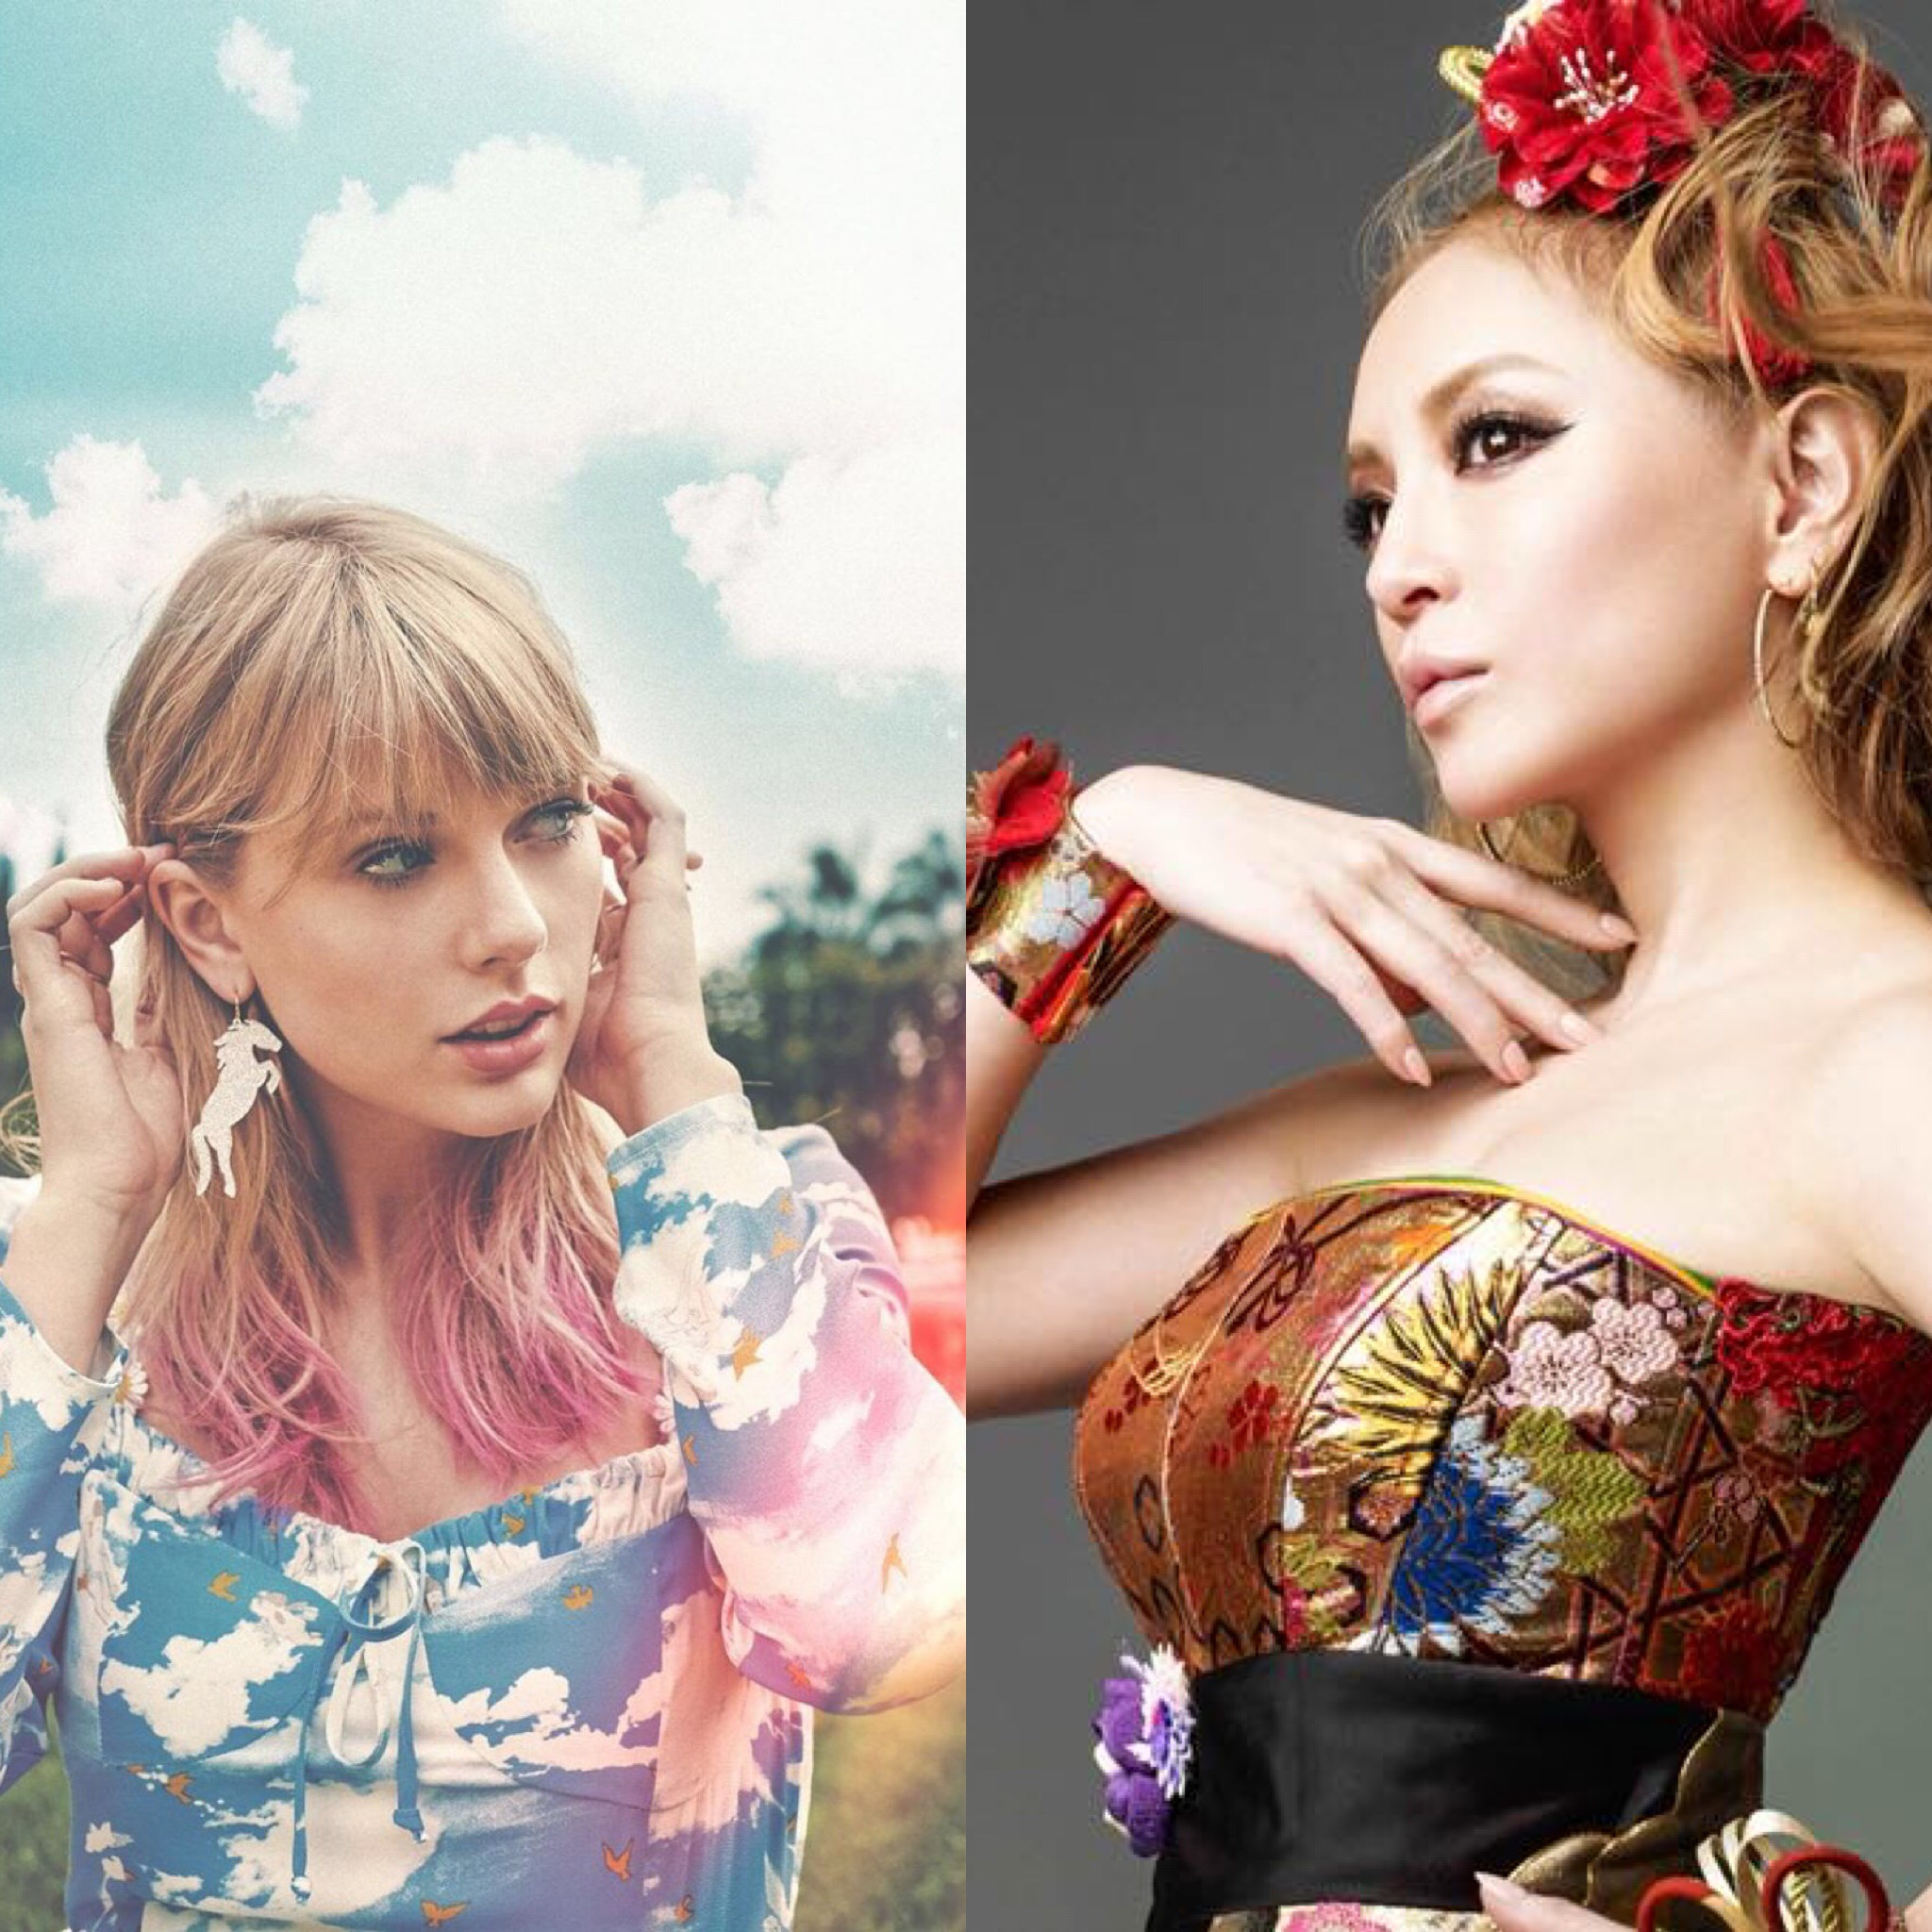 Taylor Swift ties worldwide chart record with Ayumi Hamasaki